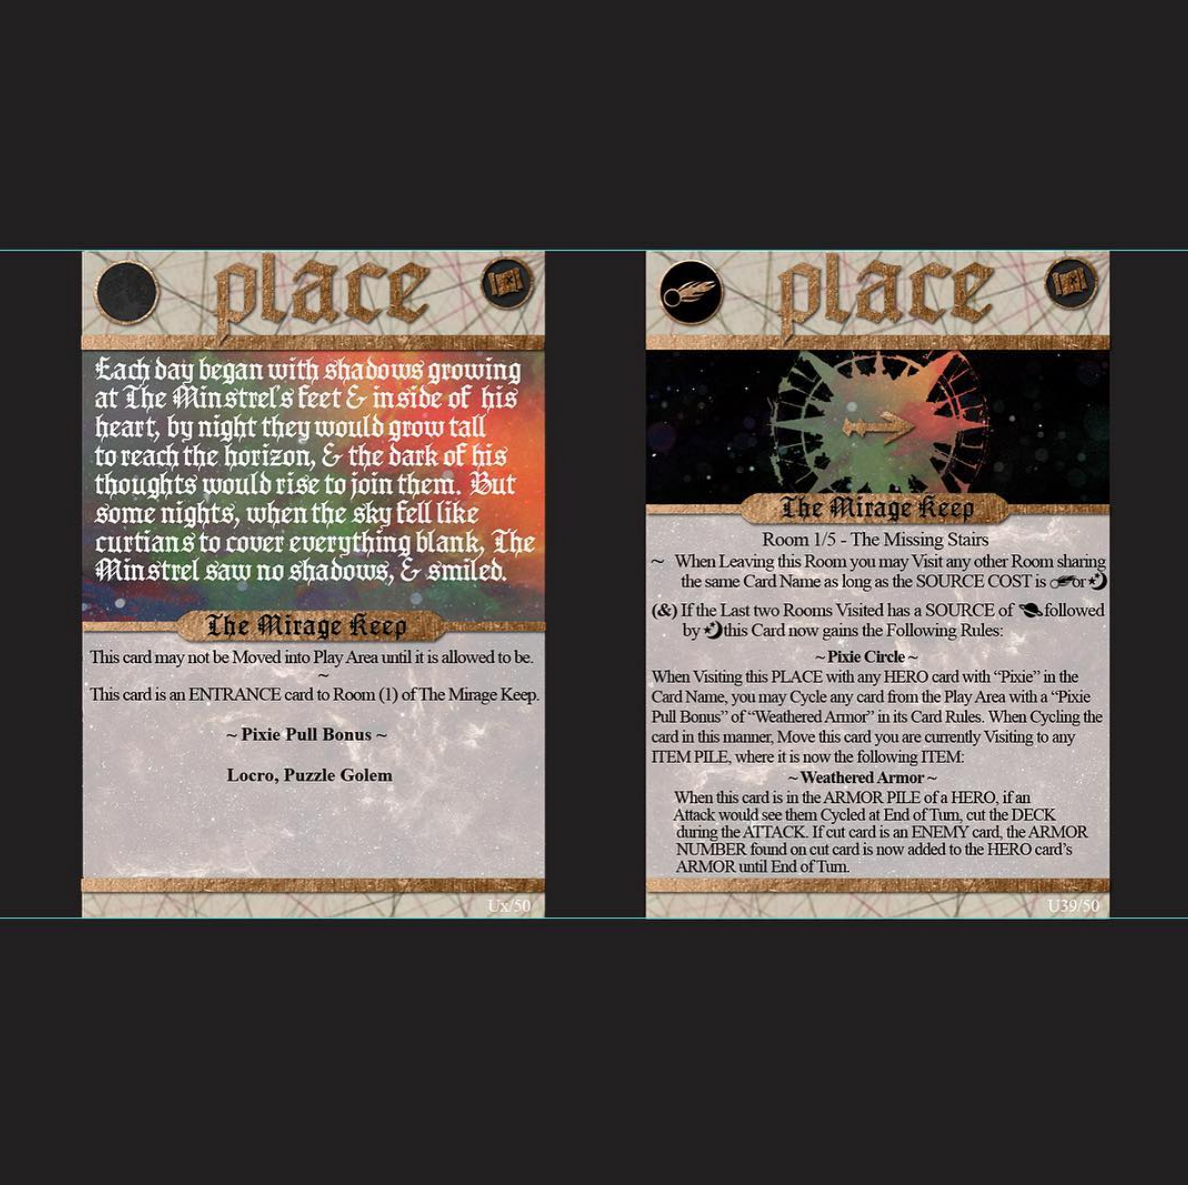 """2017 Deck 1.5 The Under Sky screenshot of PLACE & """"keep"""" card graphics (including typo)"""